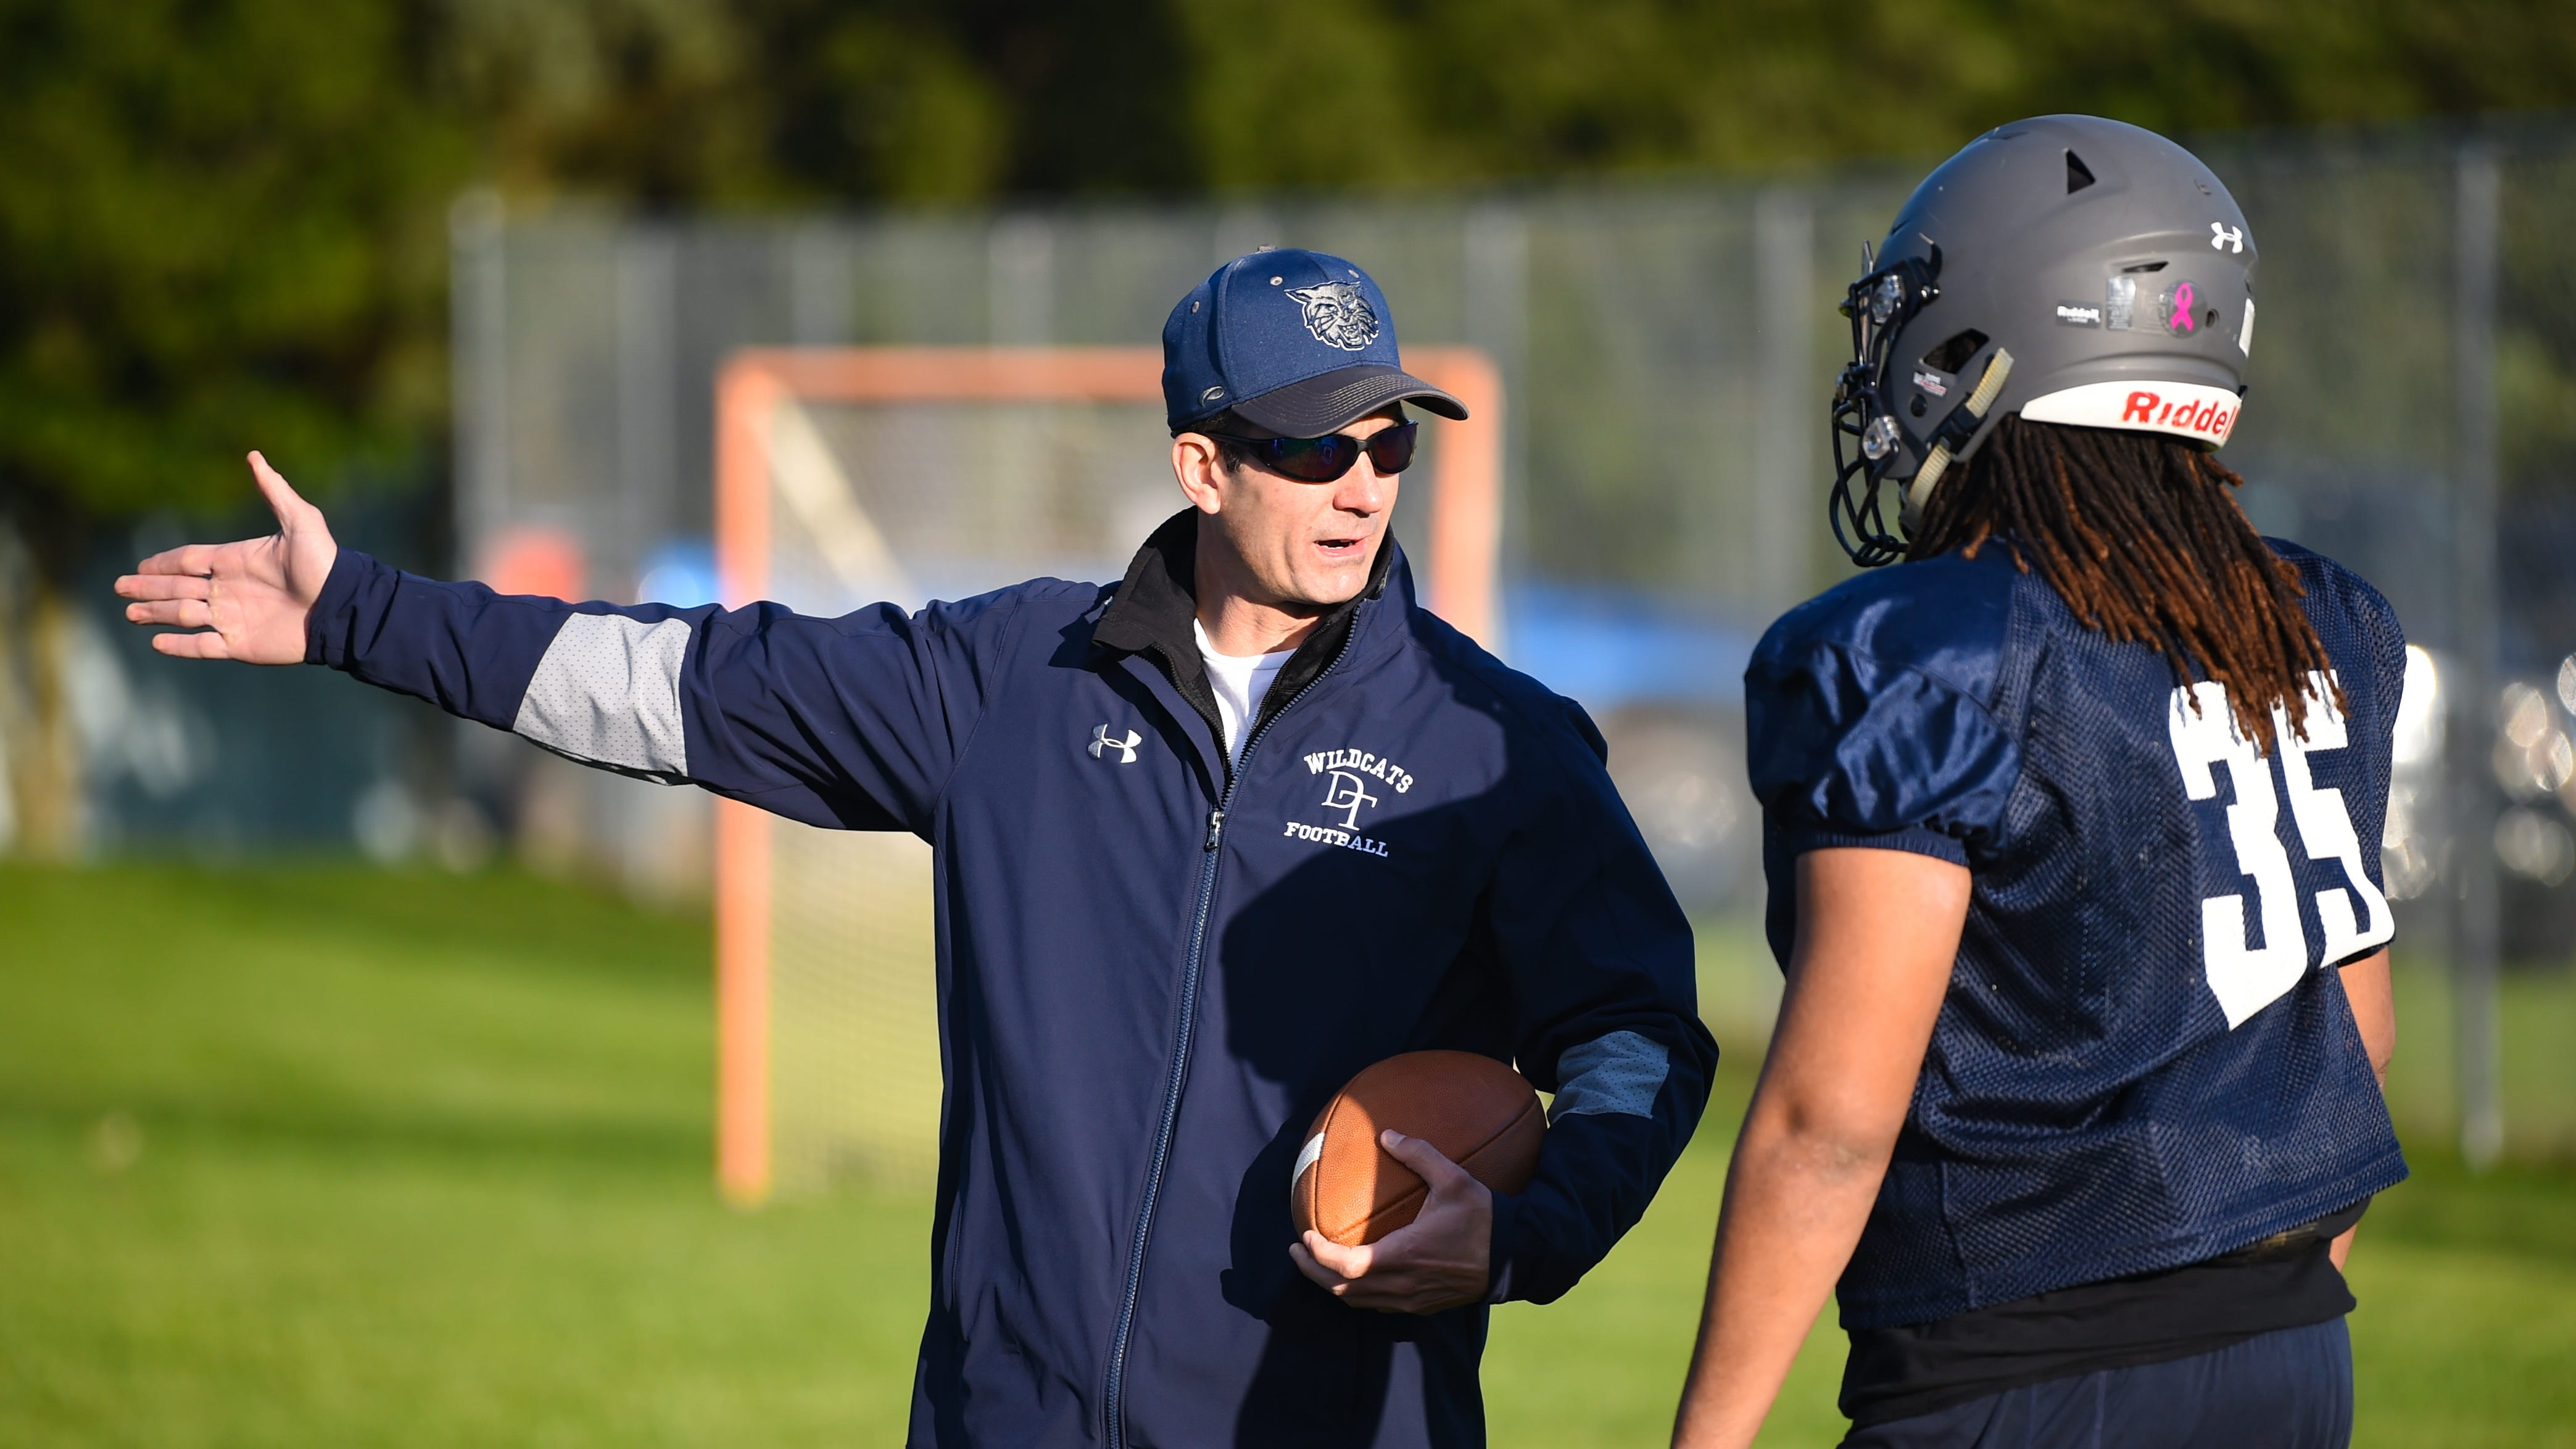 Pa. Auditor General Eugene DePasquale enjoying role with Dallastown football